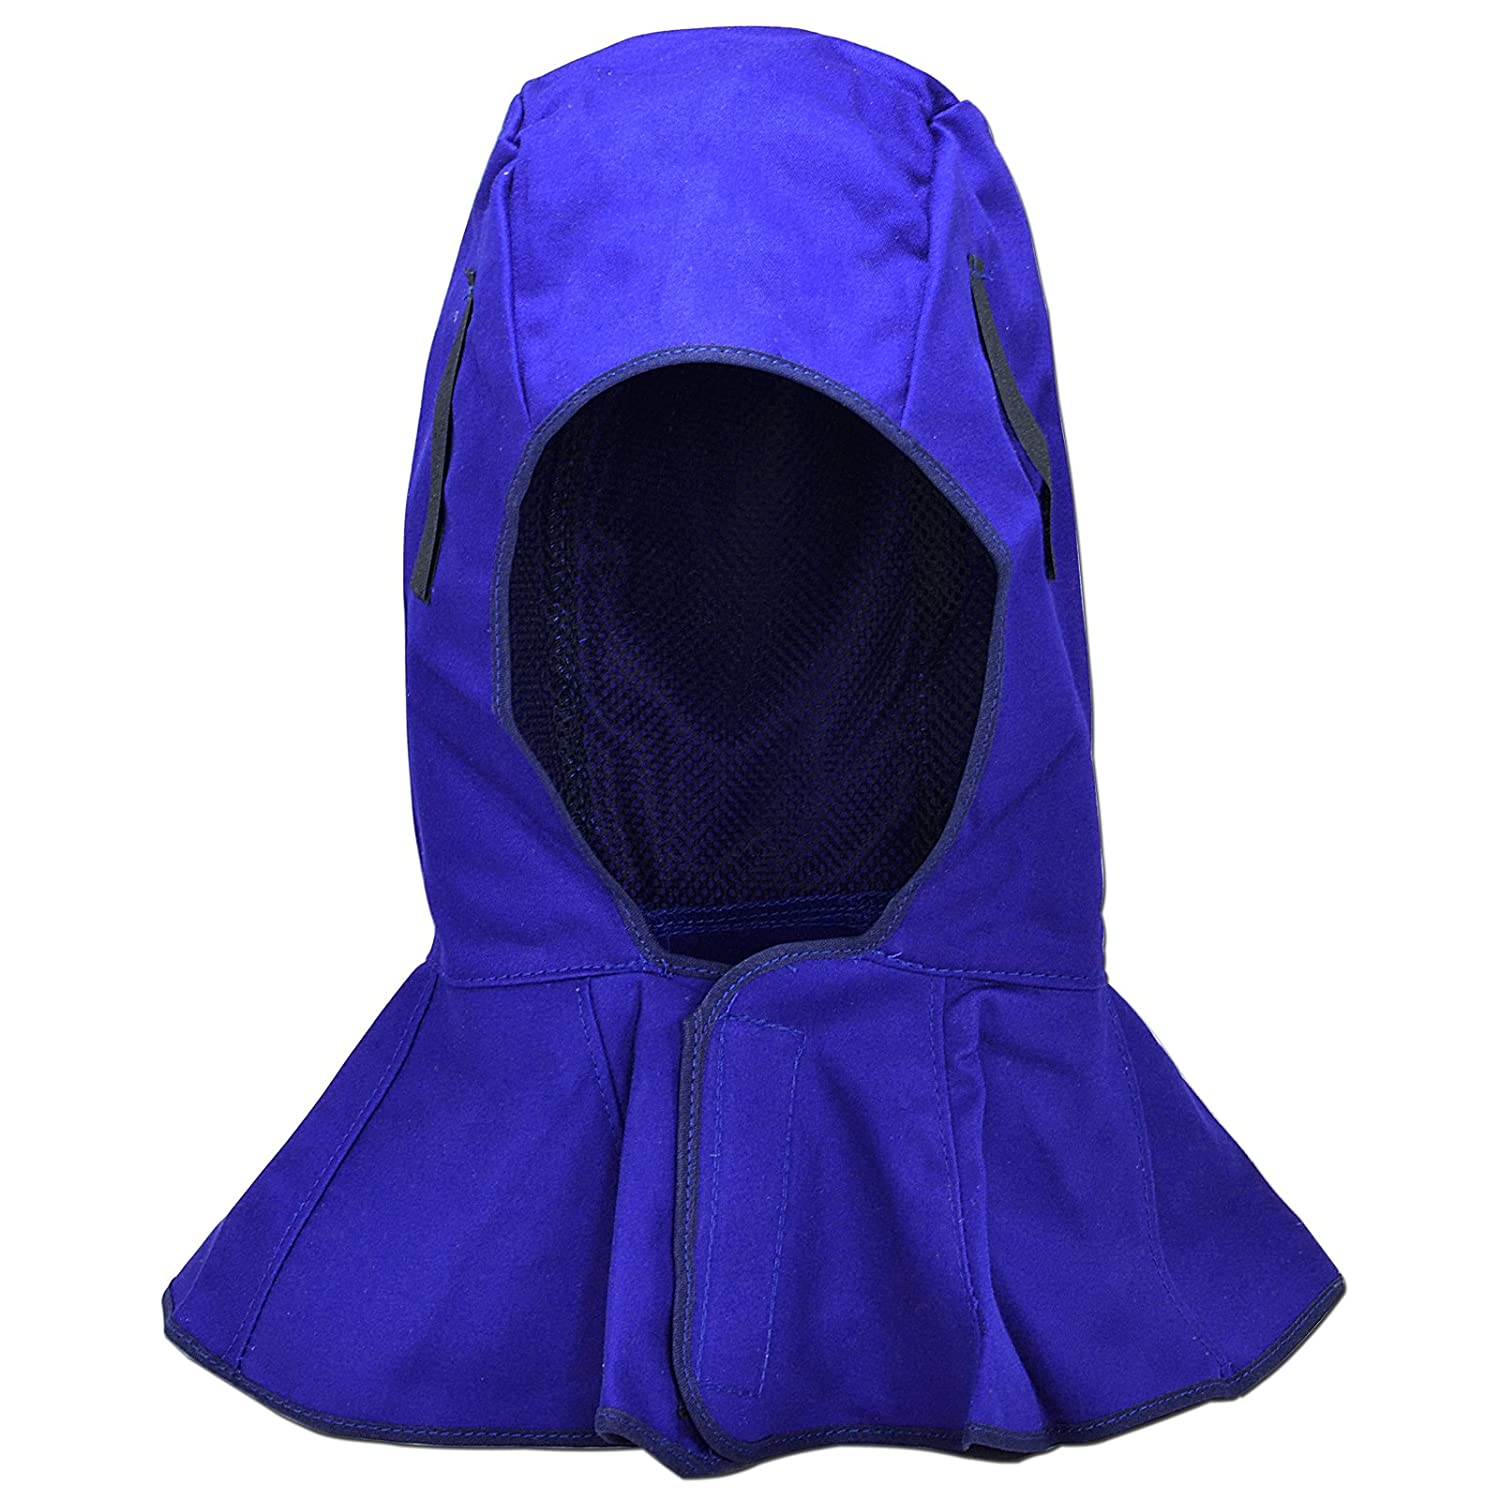 FR Full Protective Hood Match with All Kinds of Welding Helmet RIVERWELDstore WP-17 WP-18 WP-26